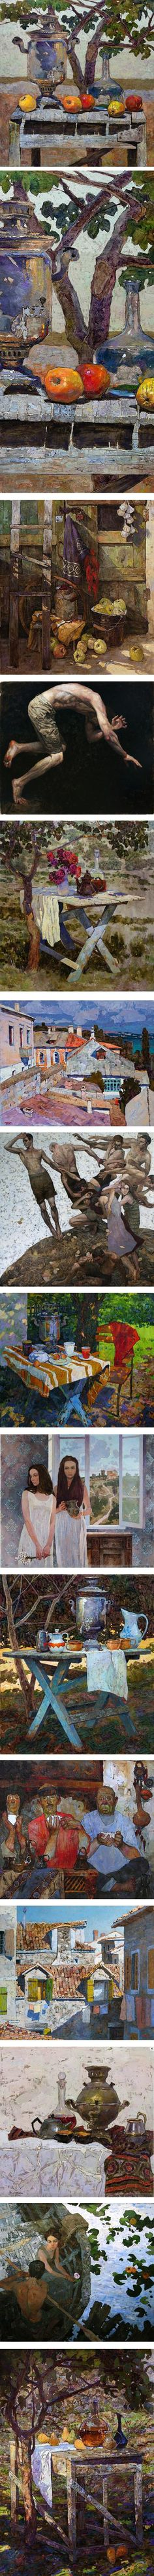 Denis Sarazhin, still life, figures, townscape paintings